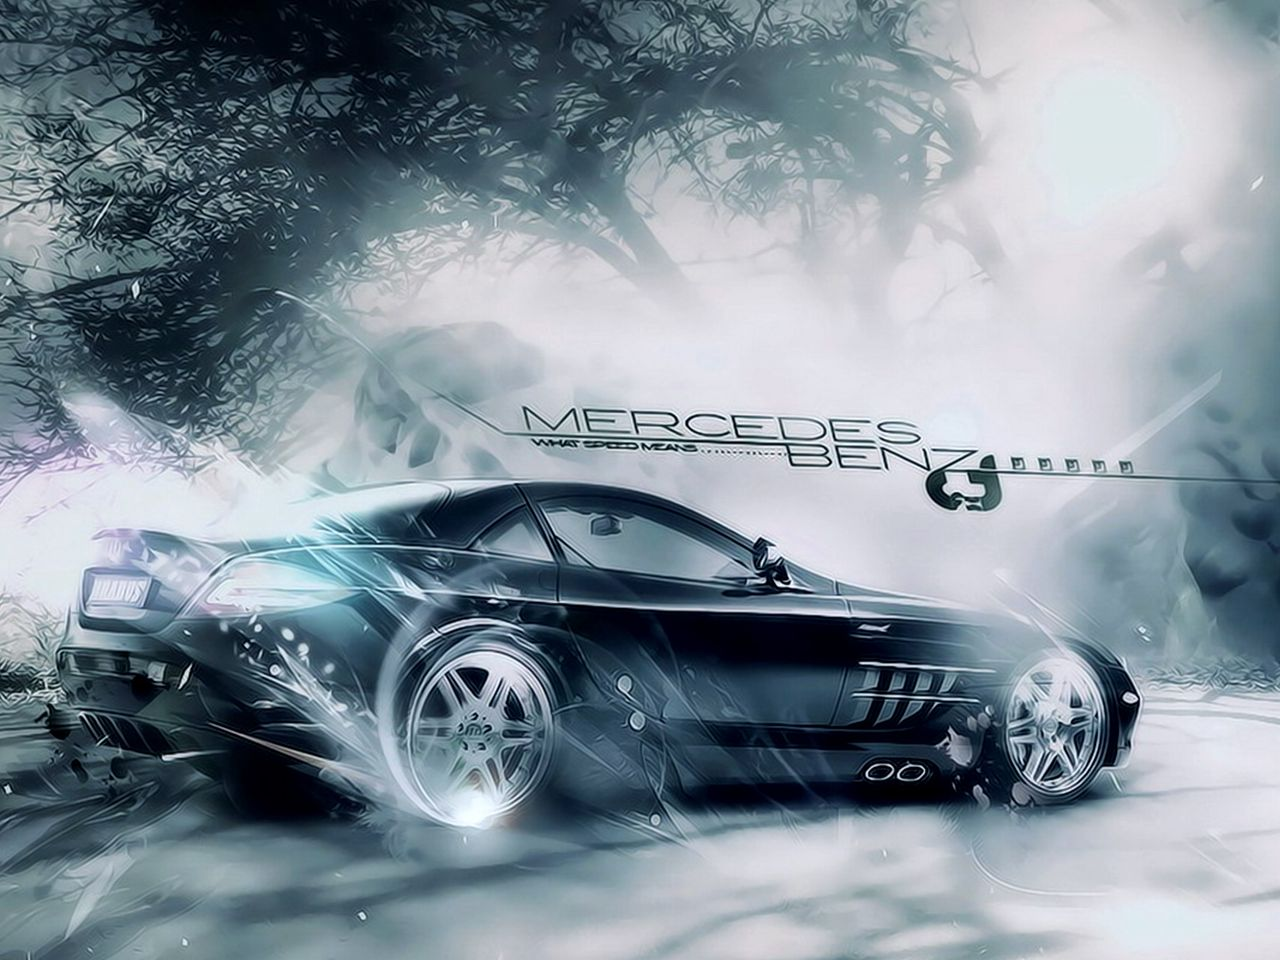 cars hd wallpapers find - photo #31